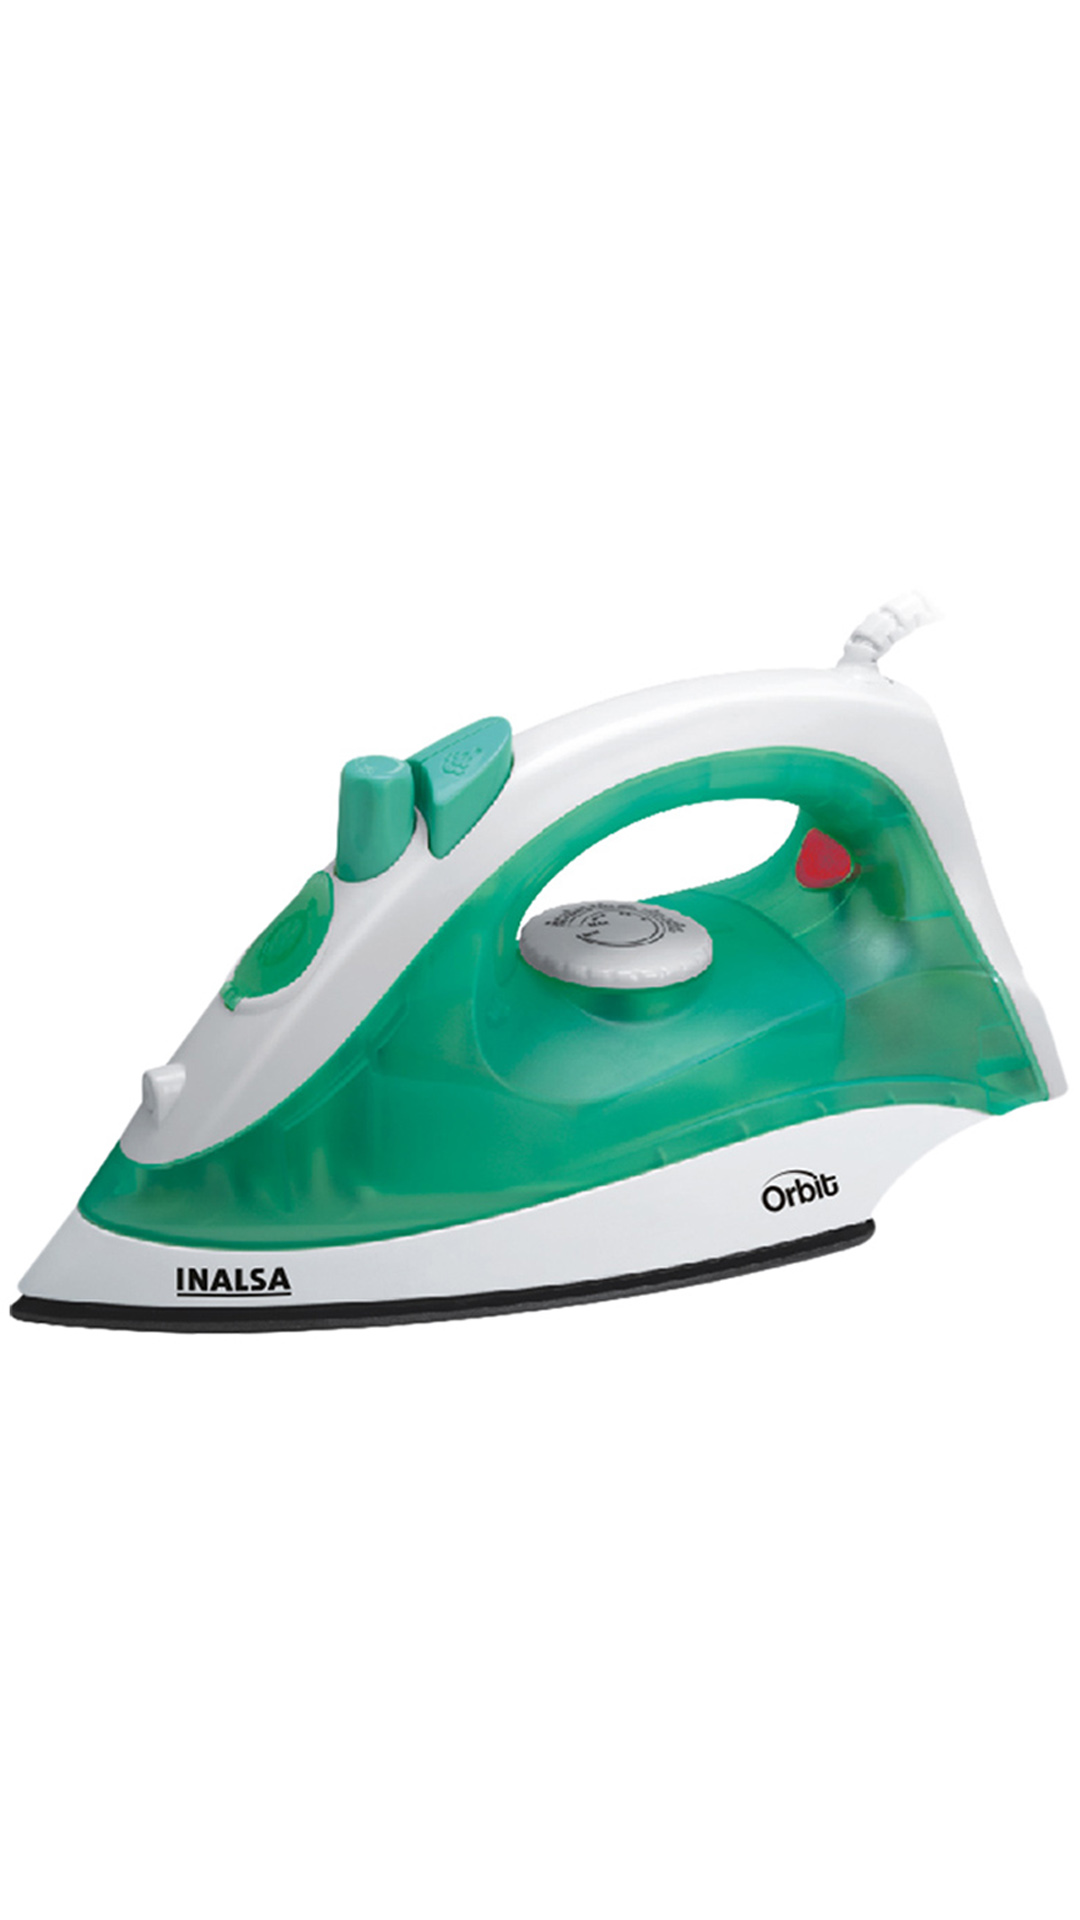 Inalsa Orbit Steam Iron Image